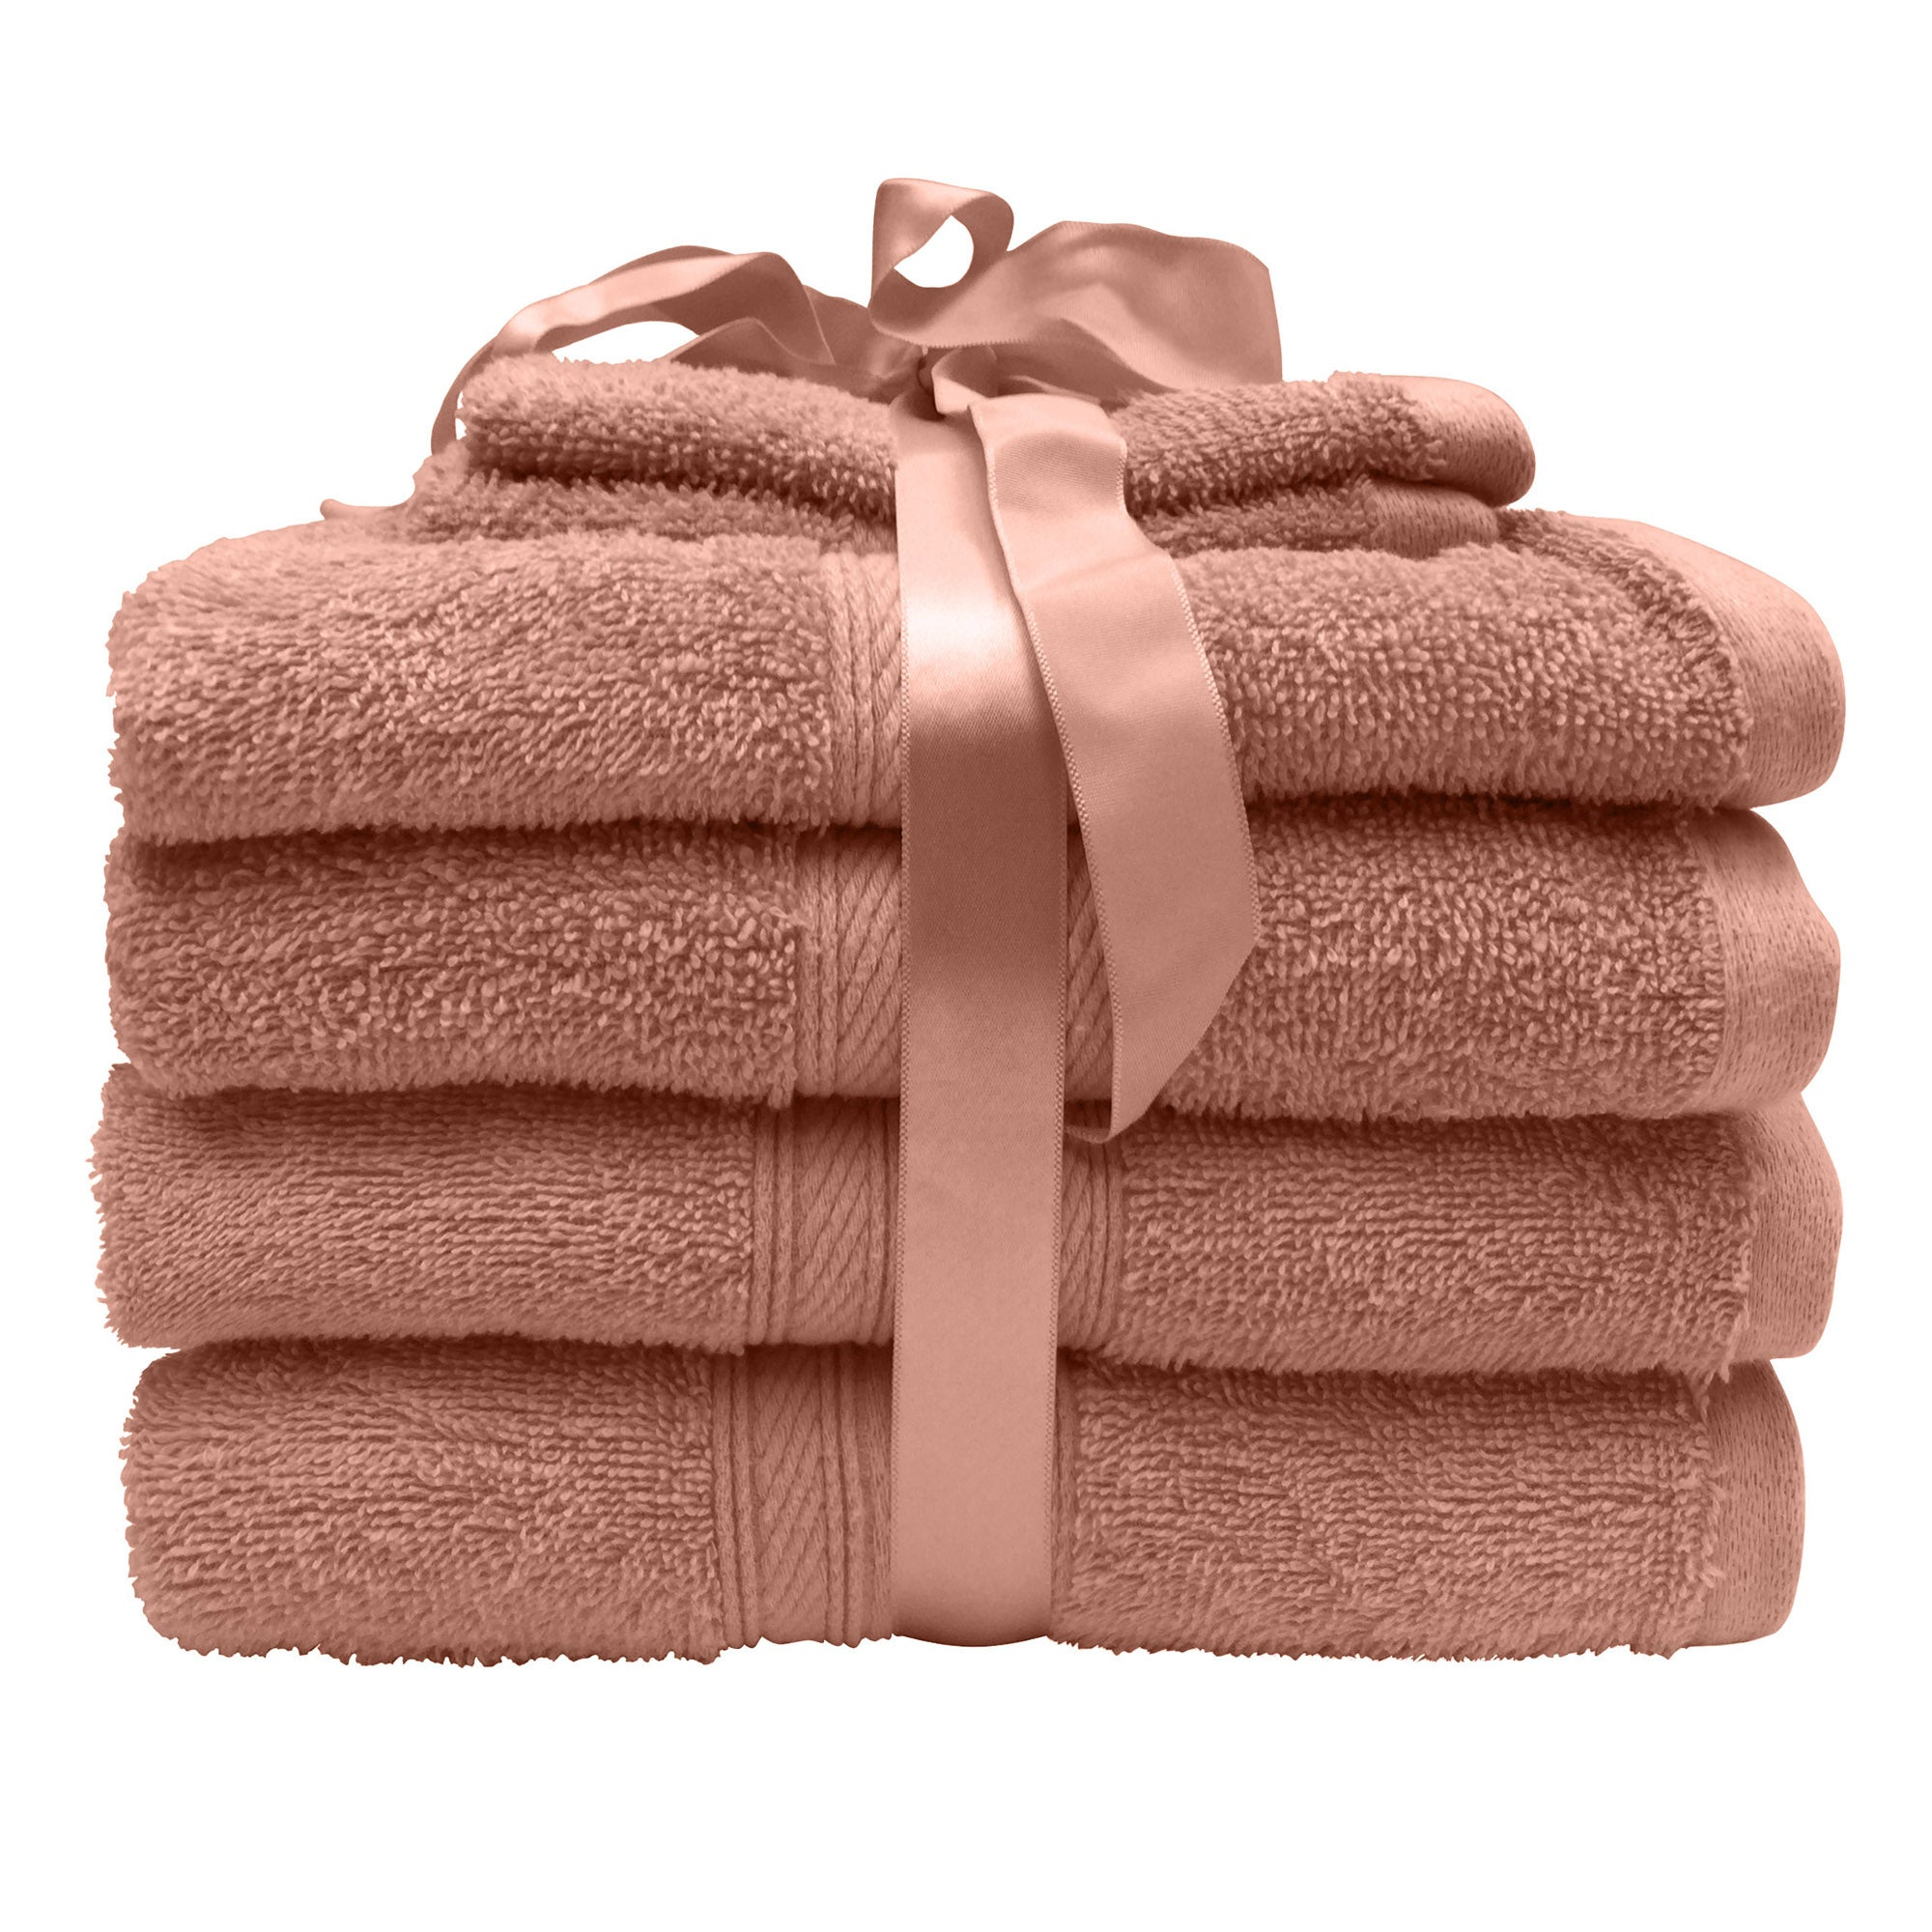 Photo of 6 piece blush pink towel bale blush -pink-